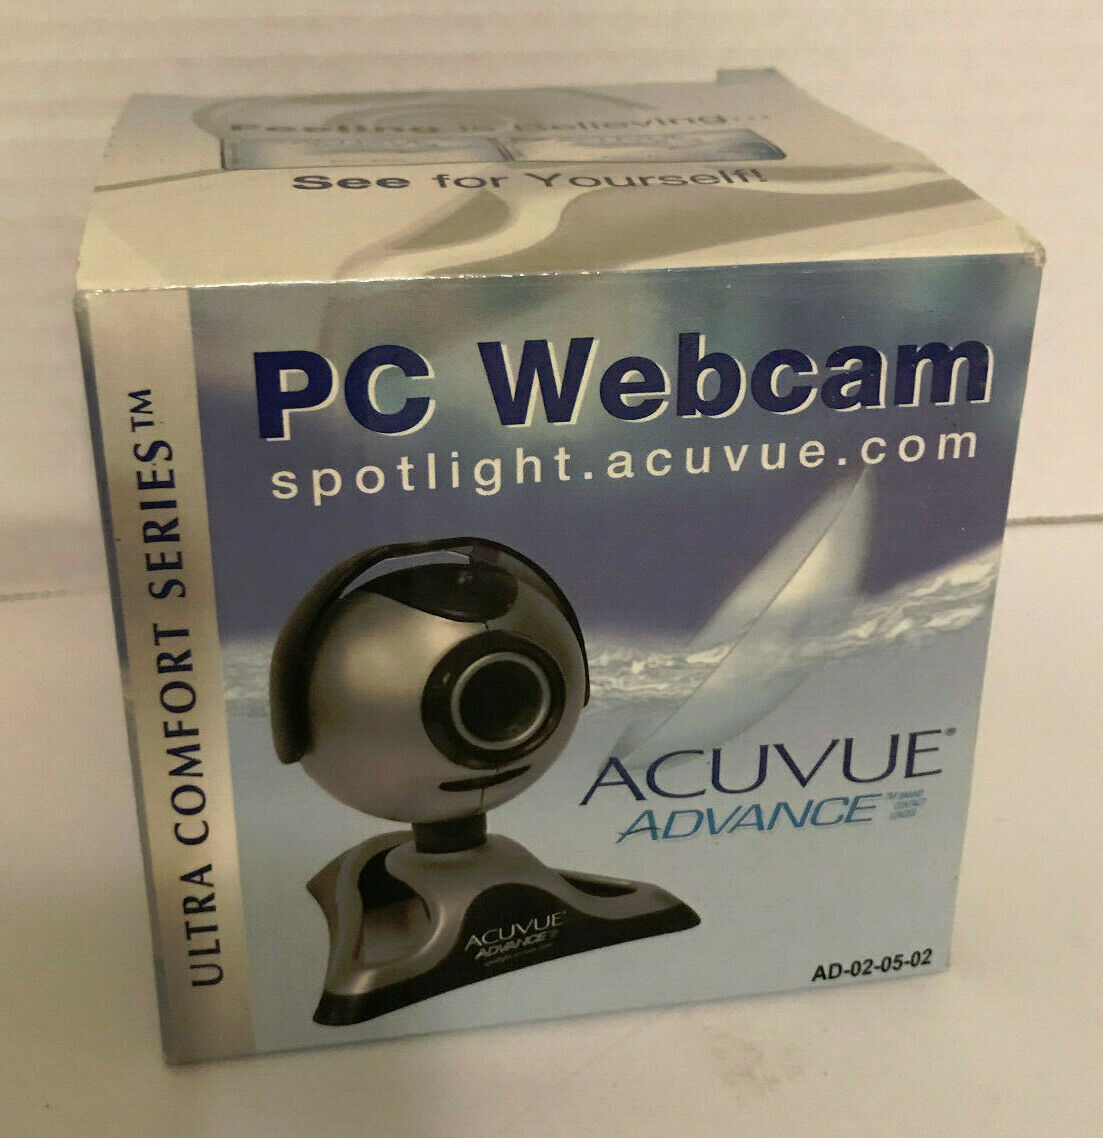 Primary image for PC Webcam #ad020502 Acuvue Advanced USB